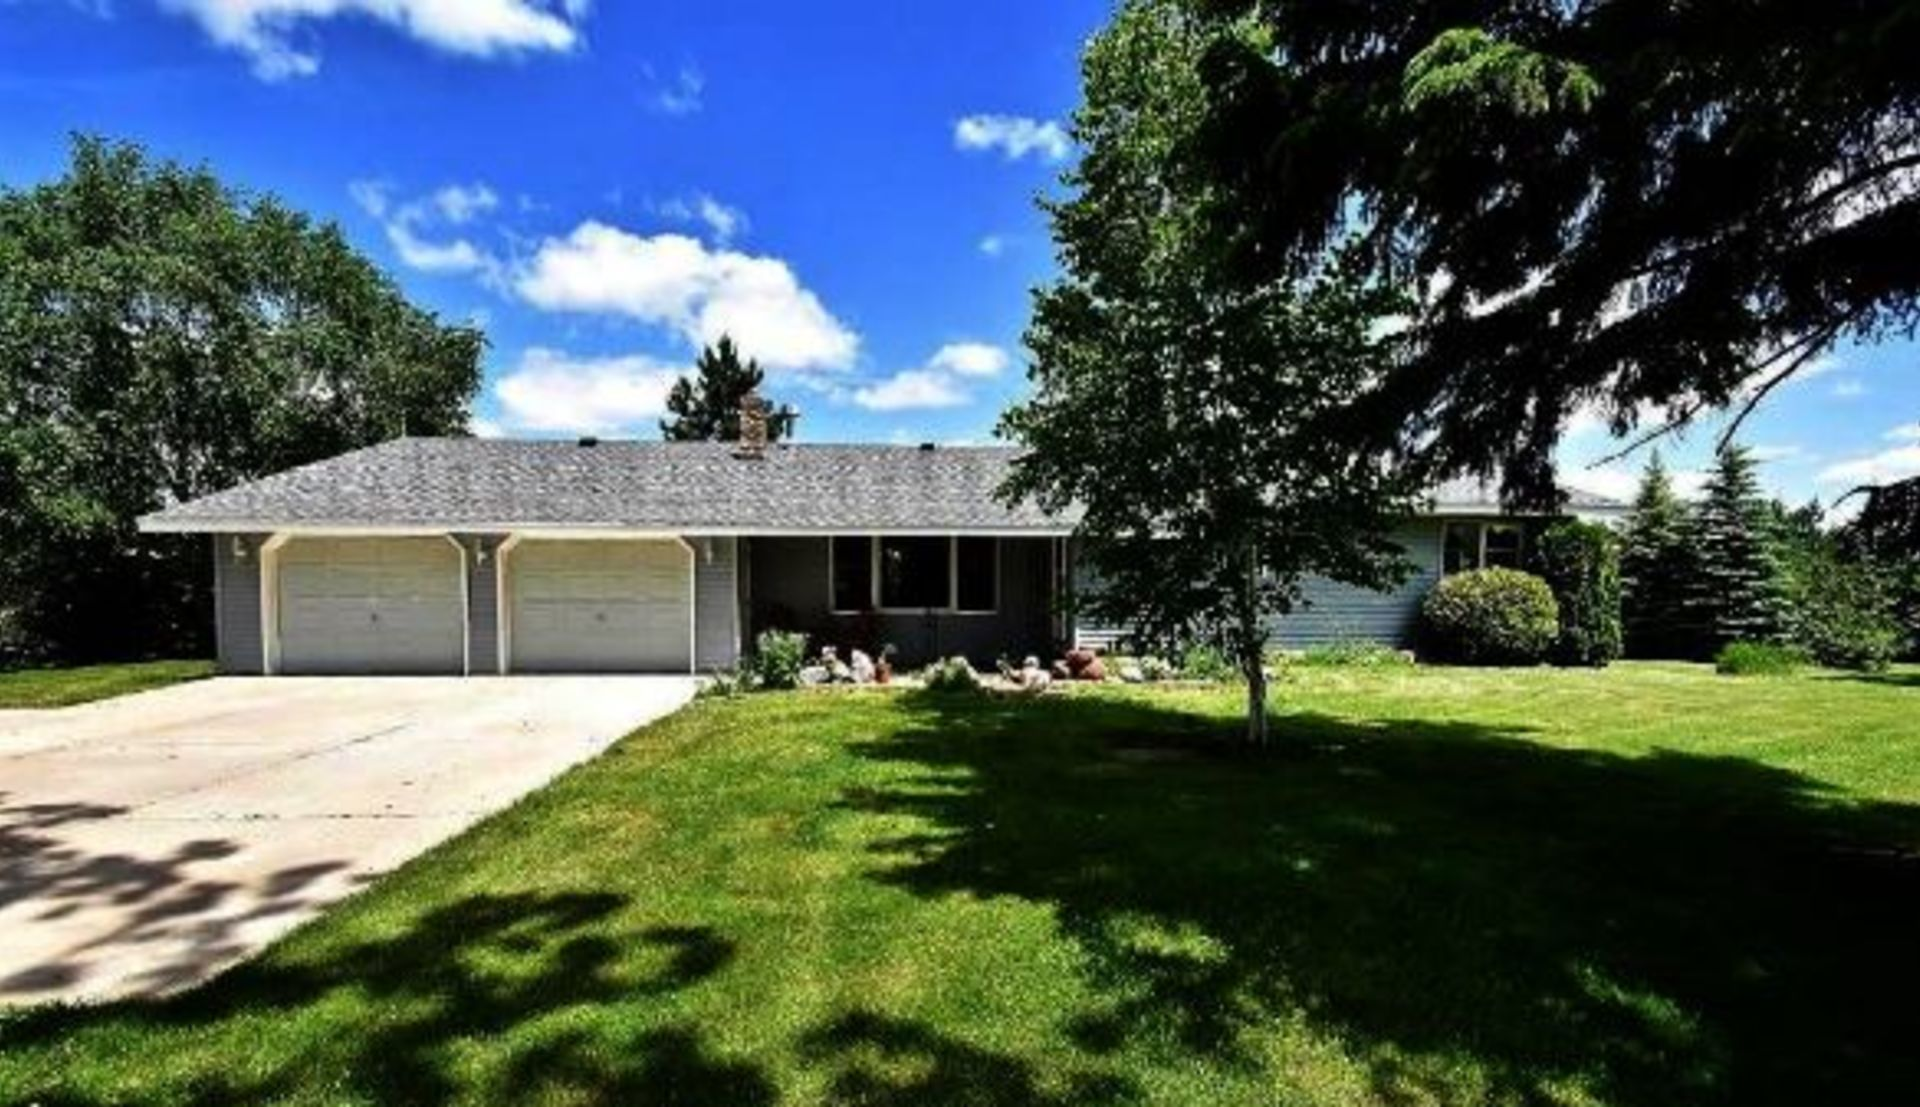 10720 265th Avenue NW, Zimmerman, MN